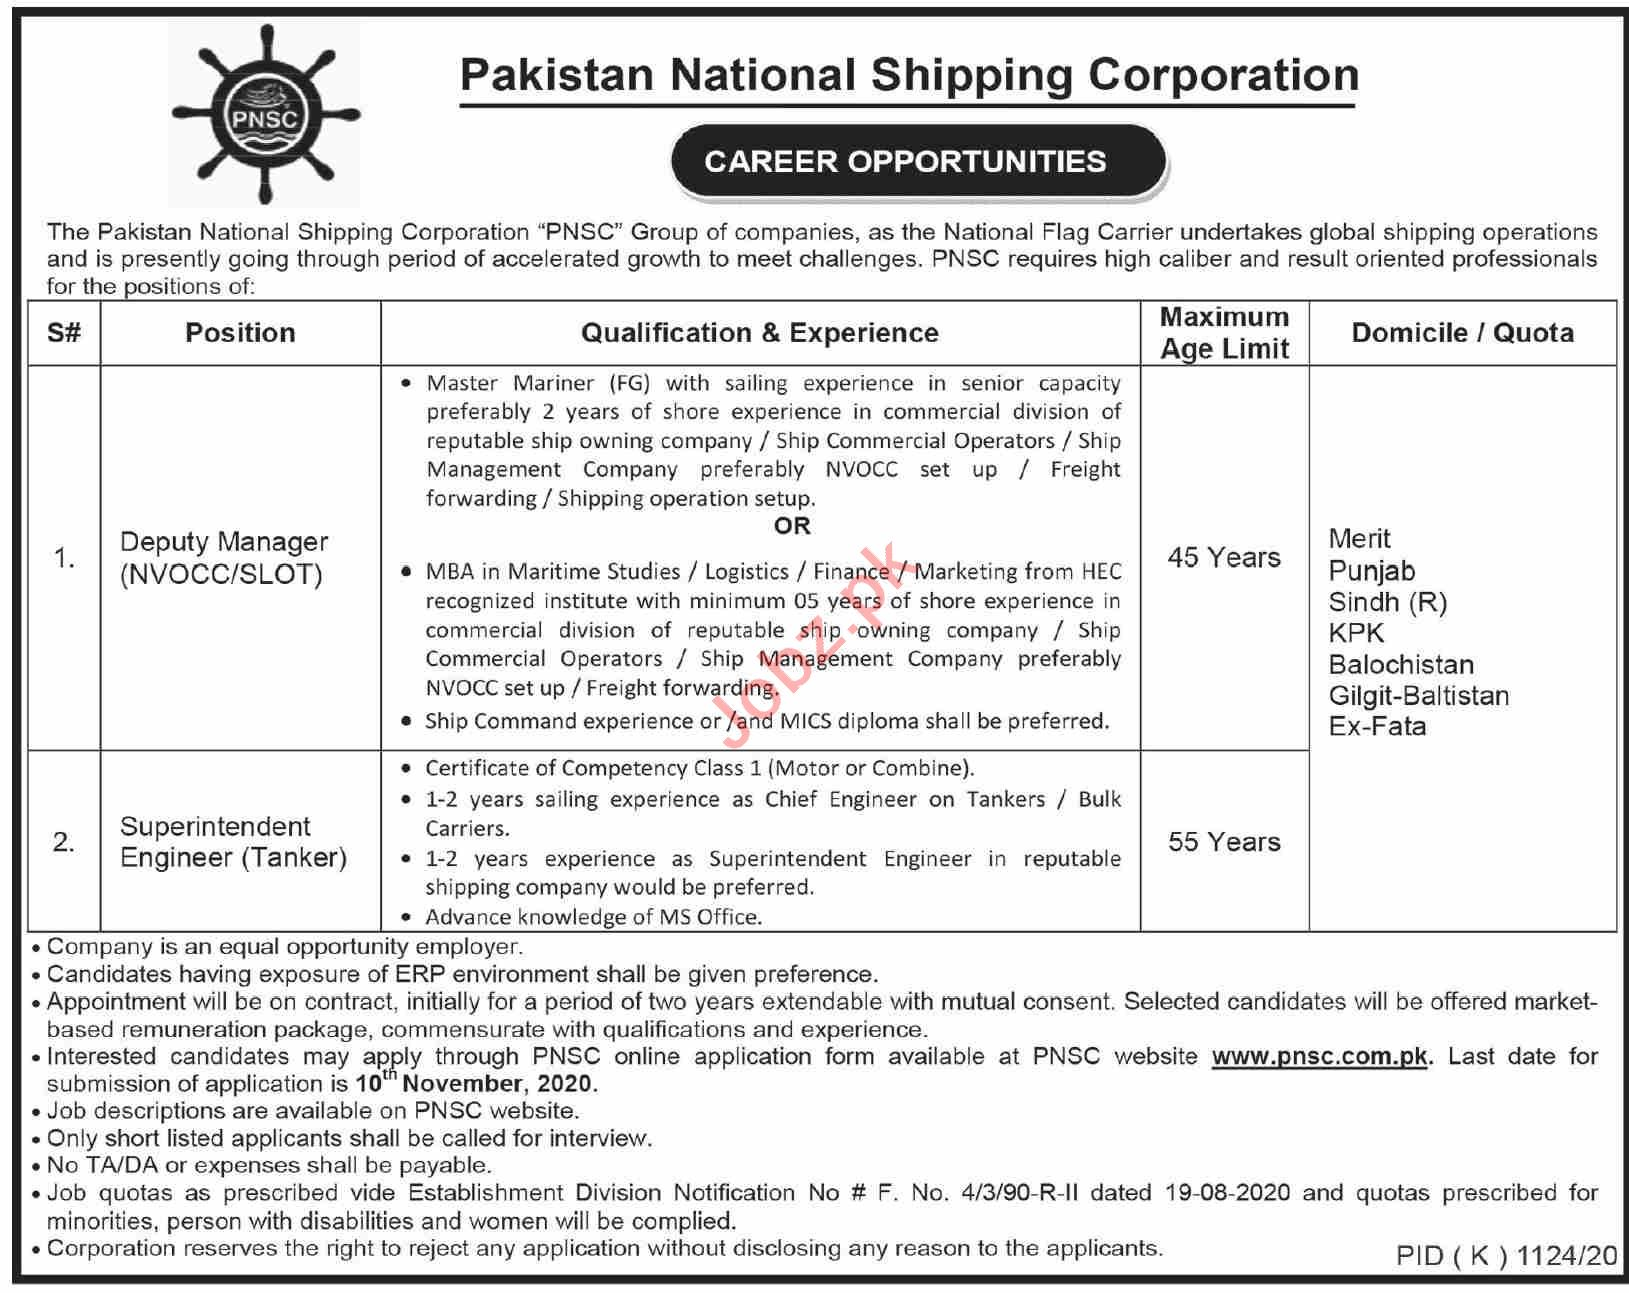 Pakistan National Shipping Corporation PNSC Karachi Jobs